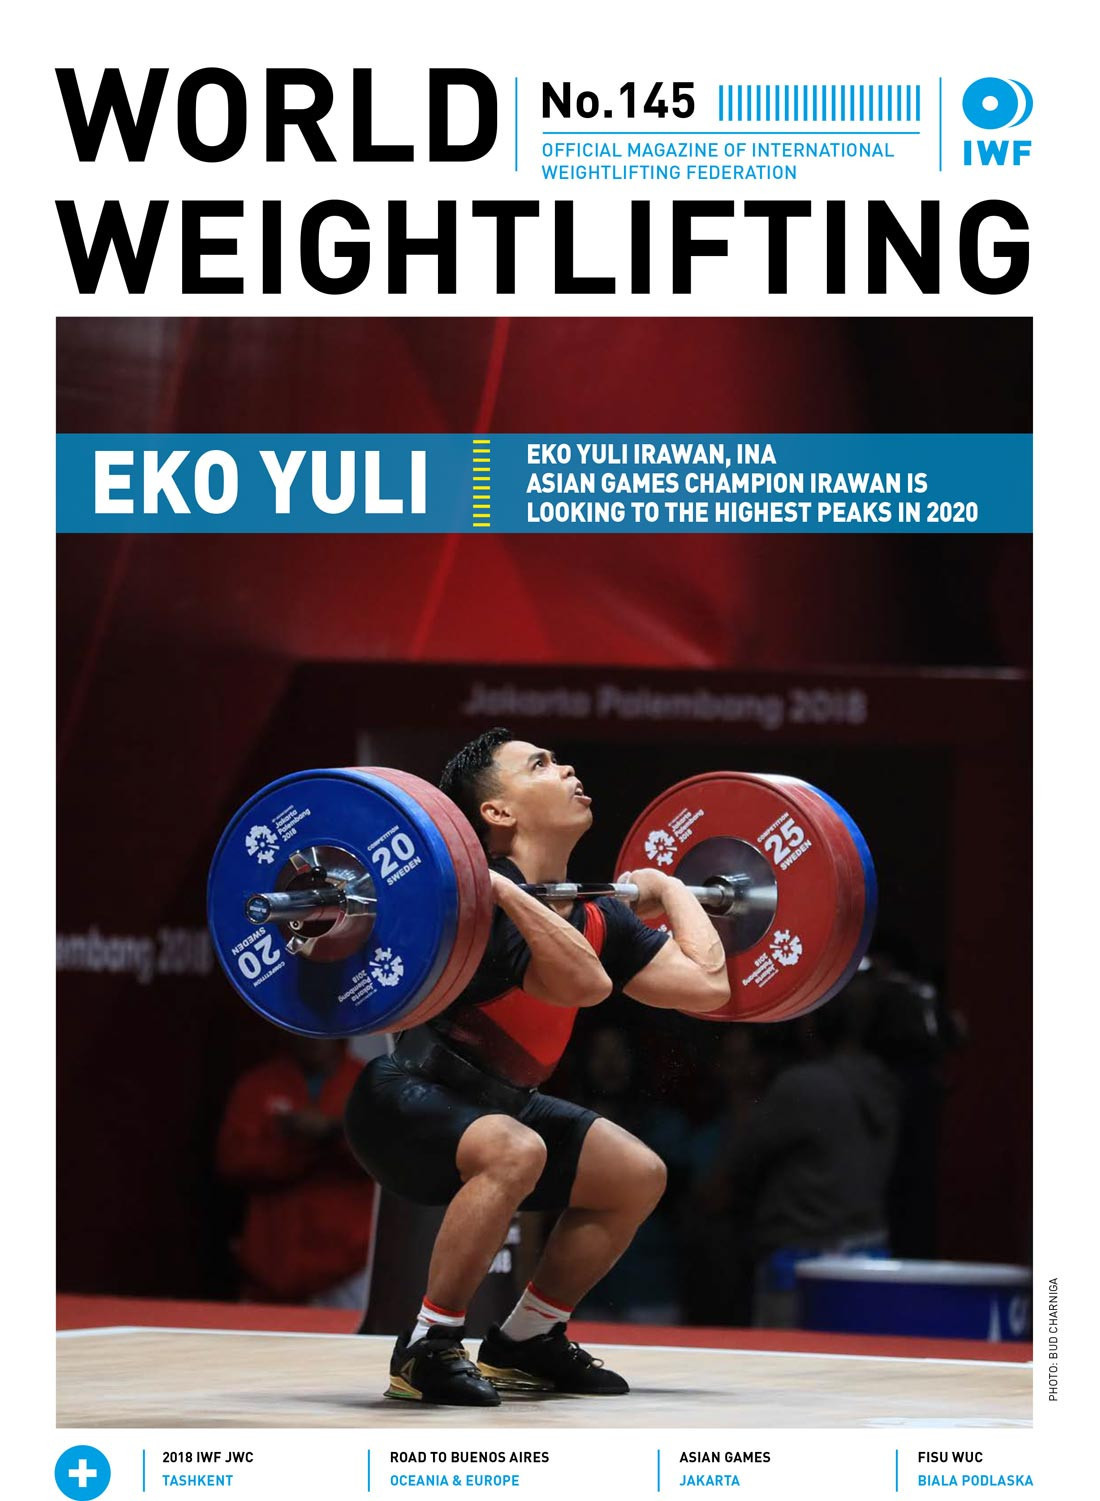 World Weightlifting Magazine No. 145